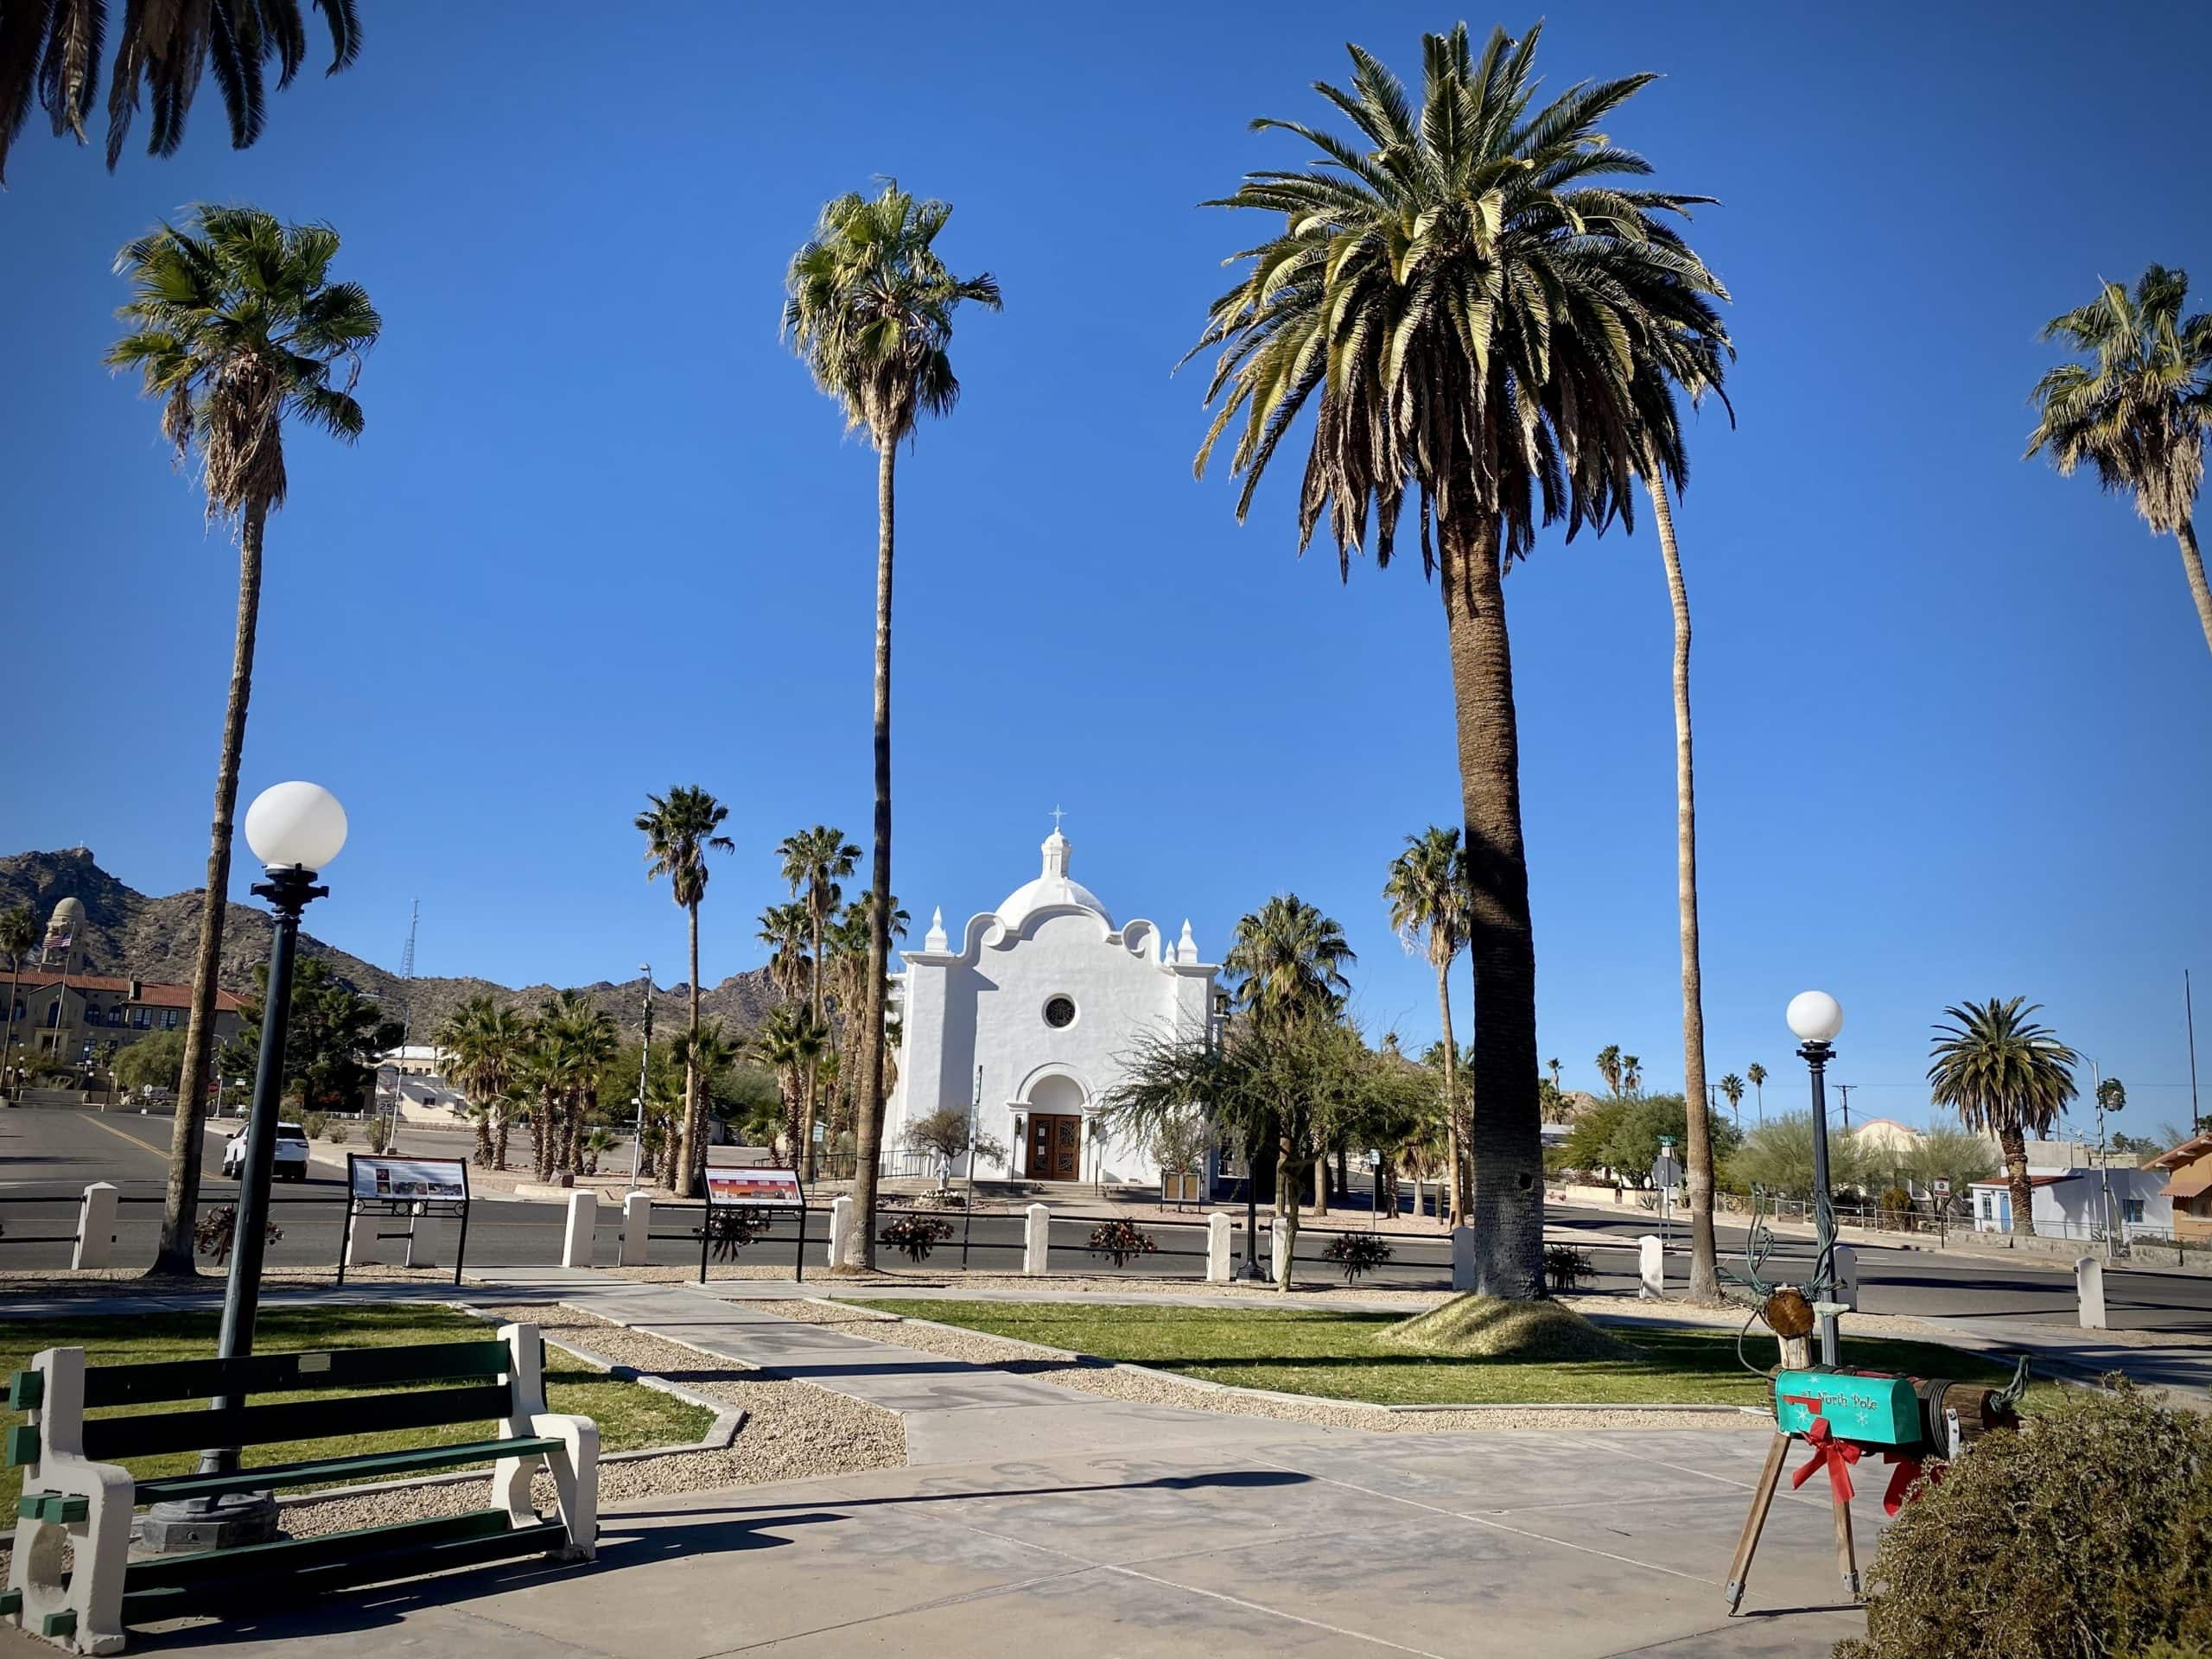 The Ajo Town Plaza.